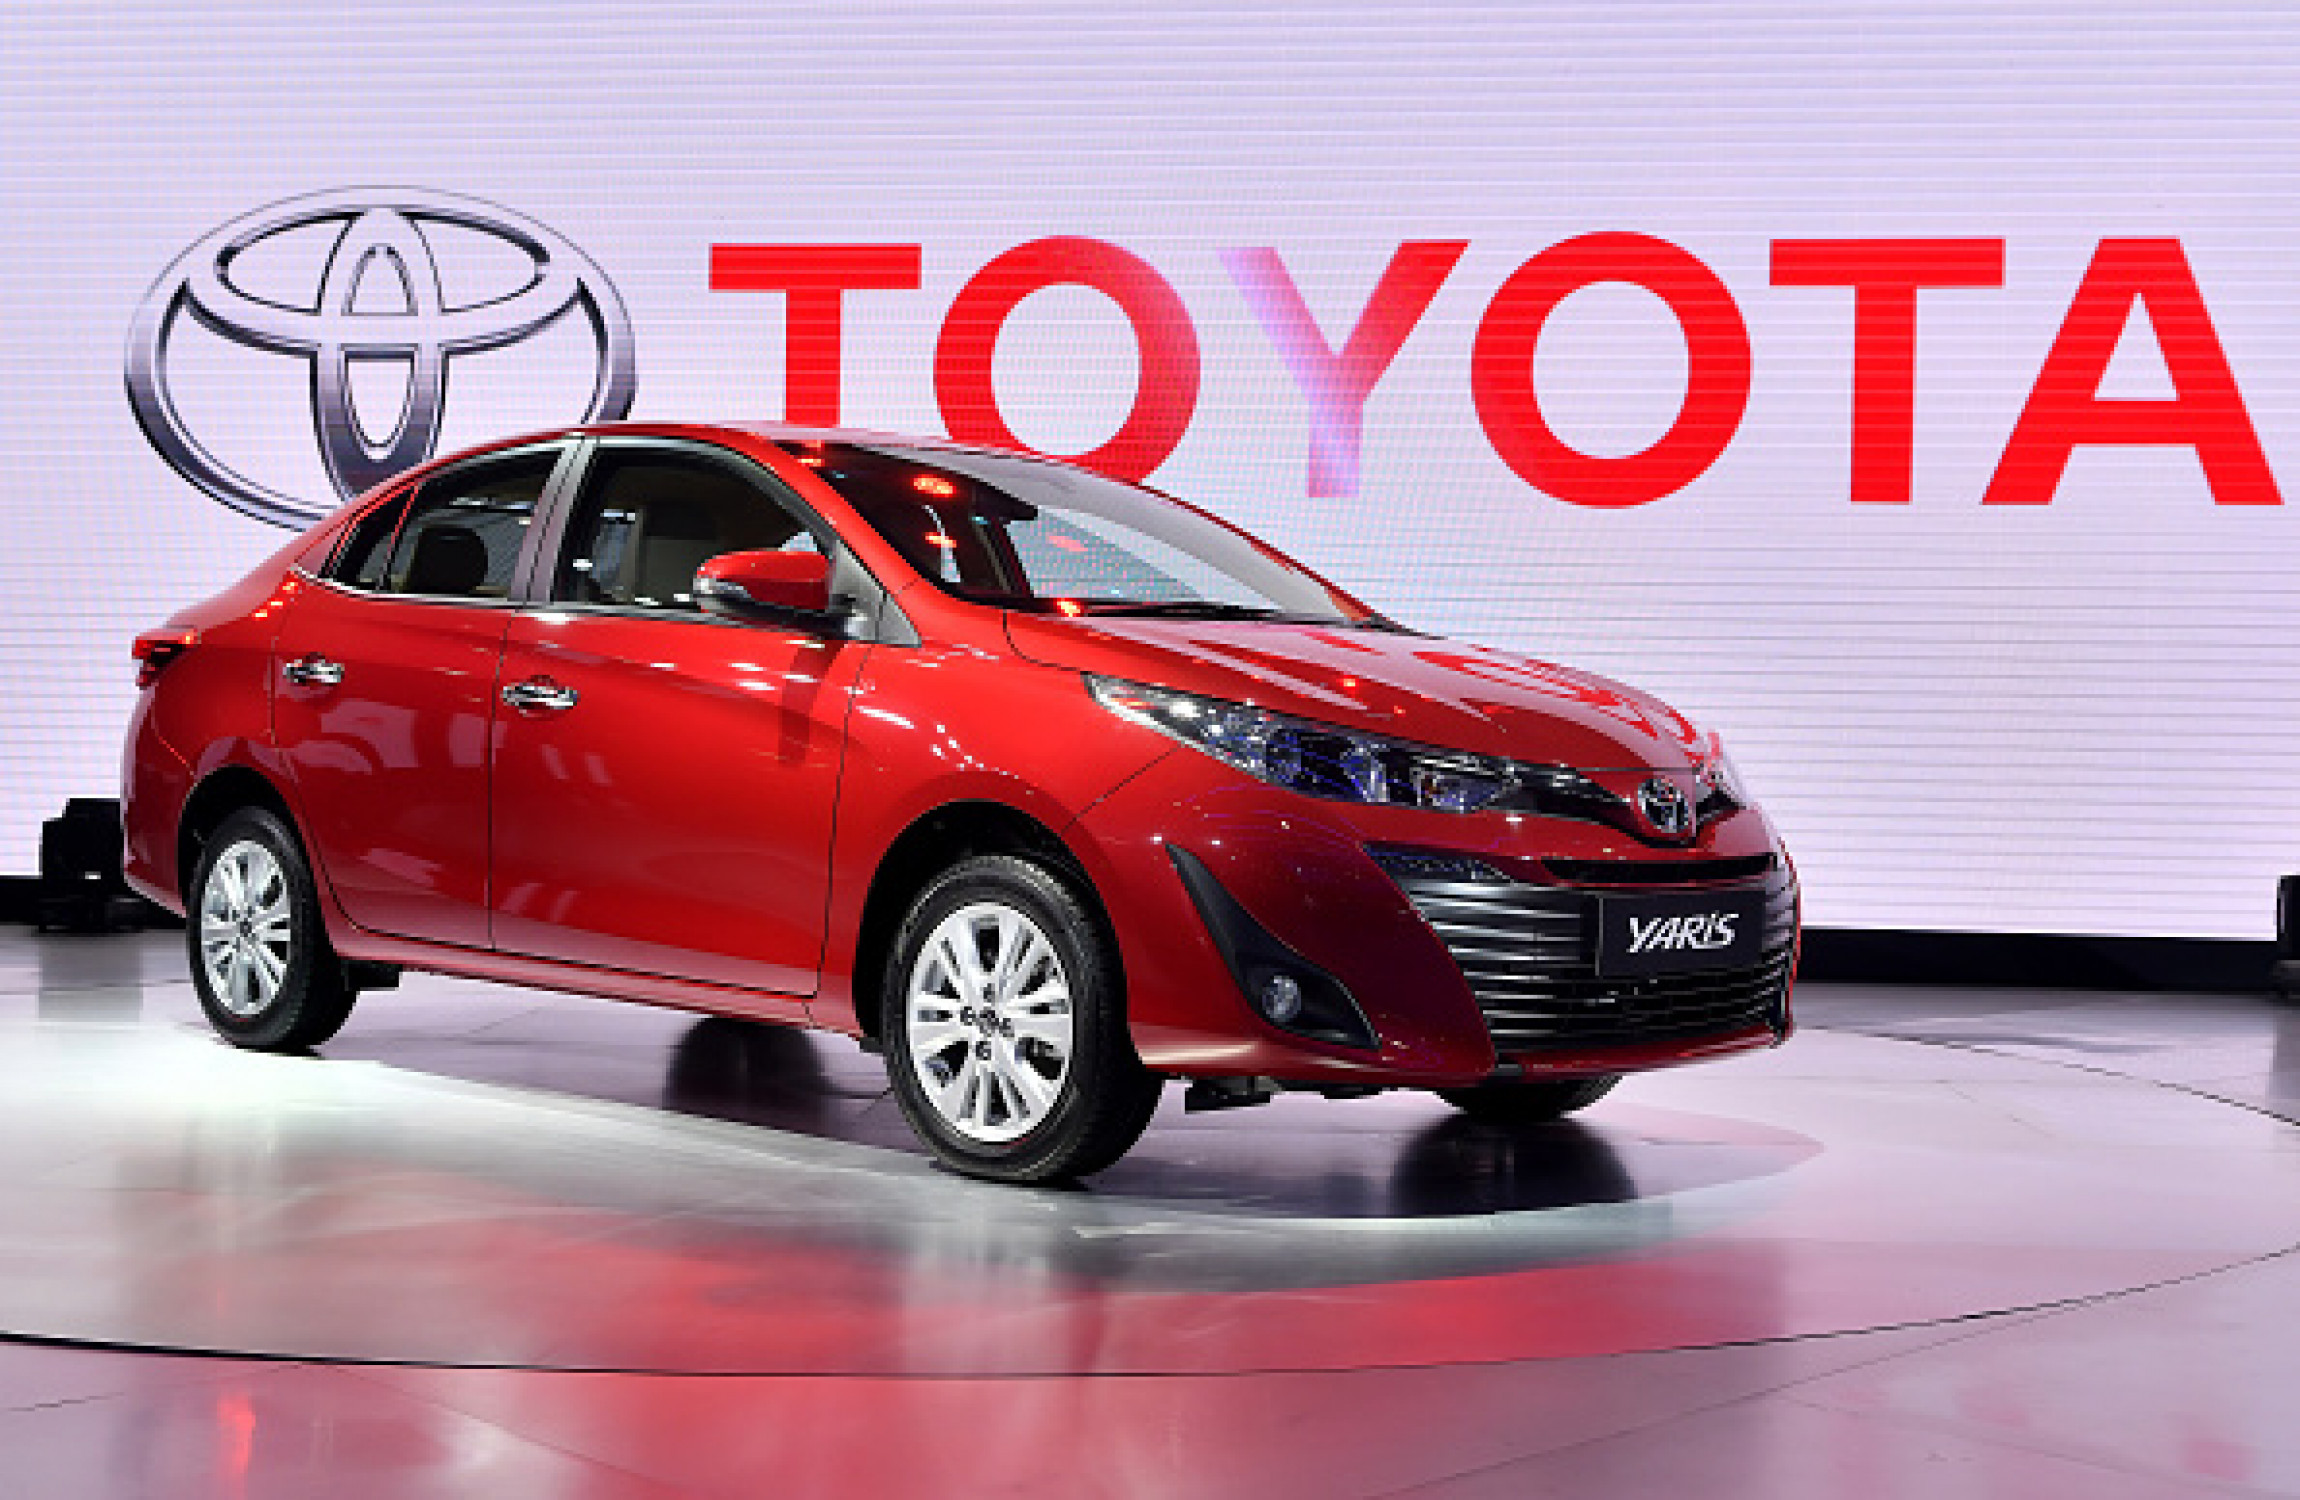 Toyota Diesel Cars Will No Longer Be Sold In Europe After 2018